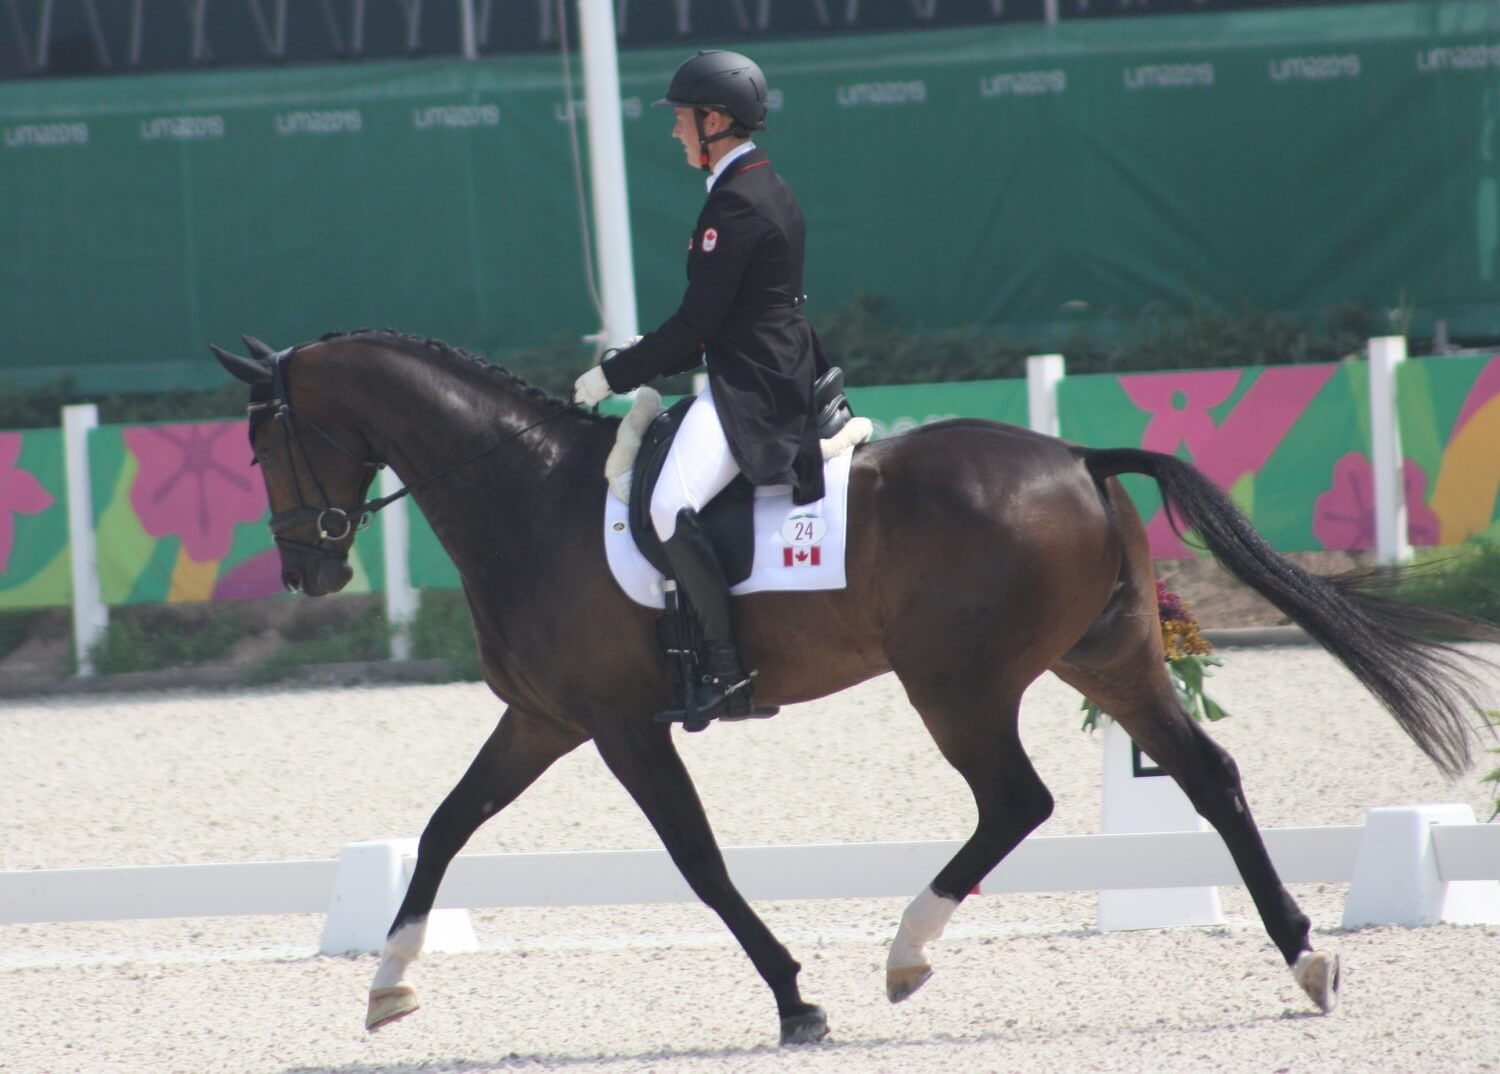 Thumbnail for Eventing Dressage: Canada Well-Positioned for Cross-Country Day at Pan Am Games